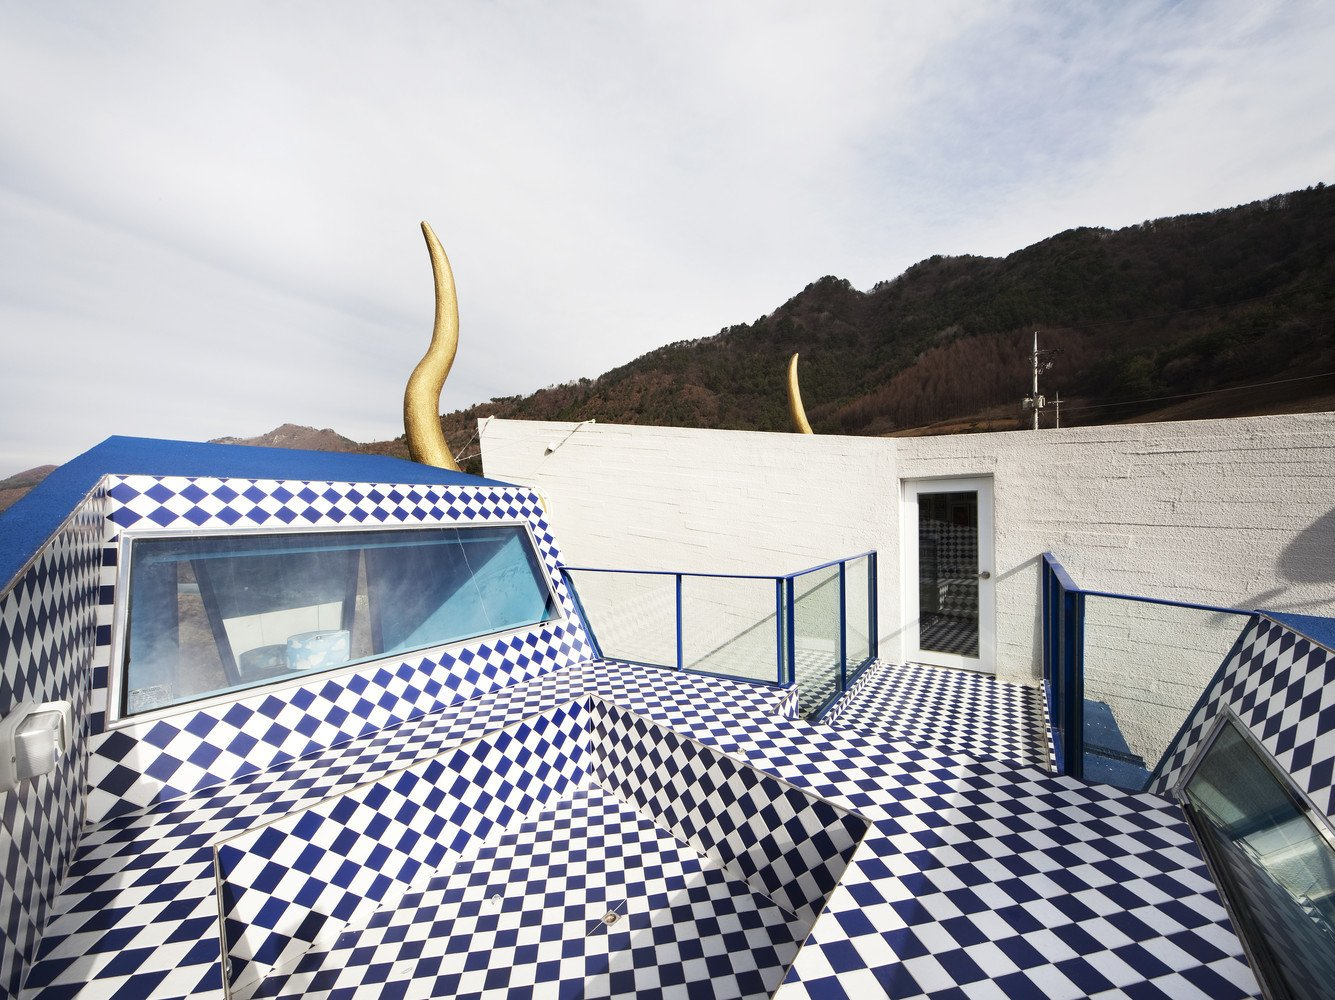 A Wacky Rock 'n' Roll Wonderland in the South Korean Countryside - Photo 5 of 11